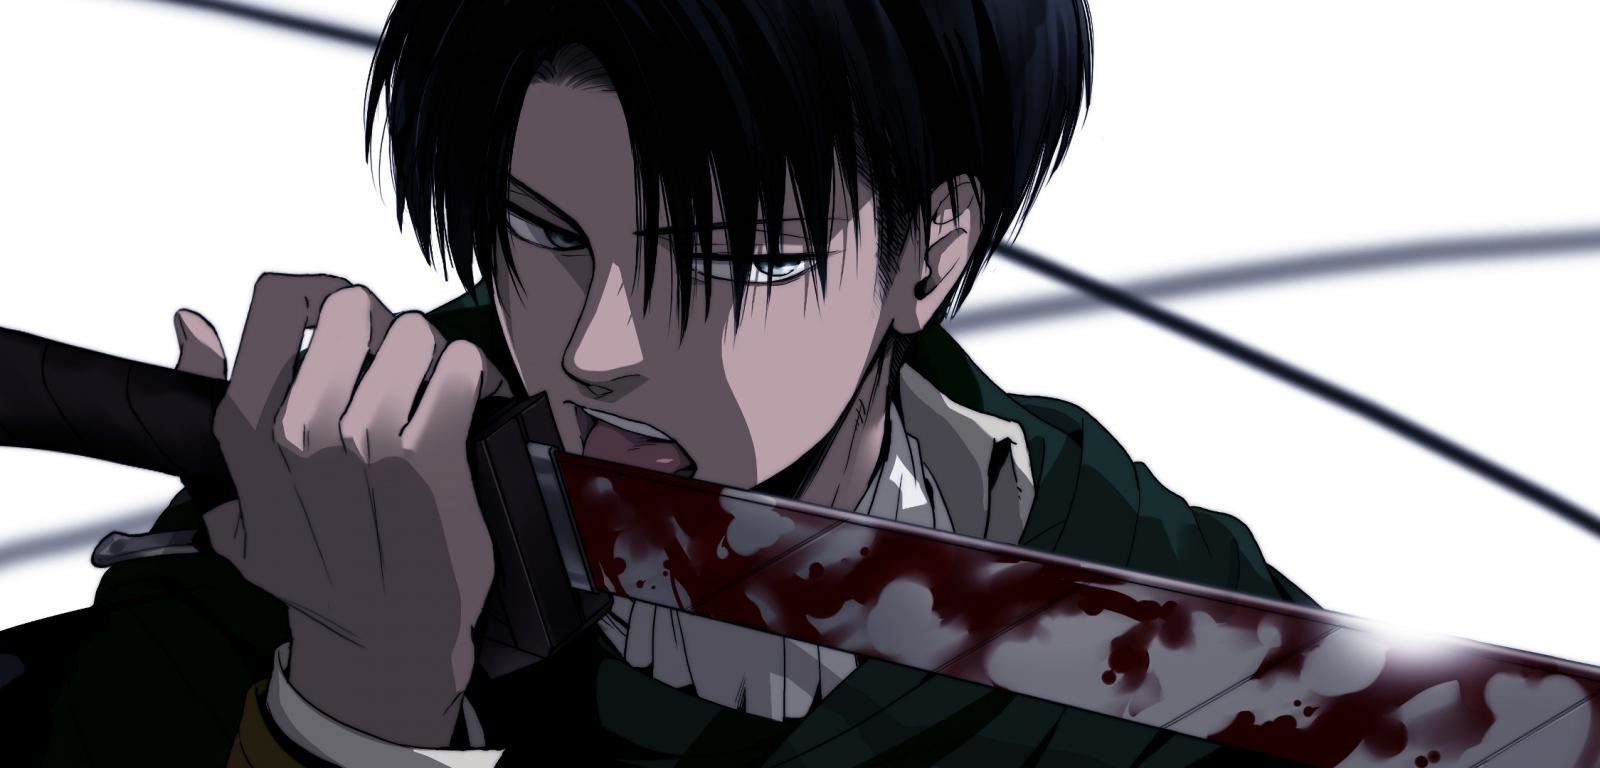 Levi Ackerman Wallpapers Top Free Levi Ackerman Backgrounds Wallpaperaccess